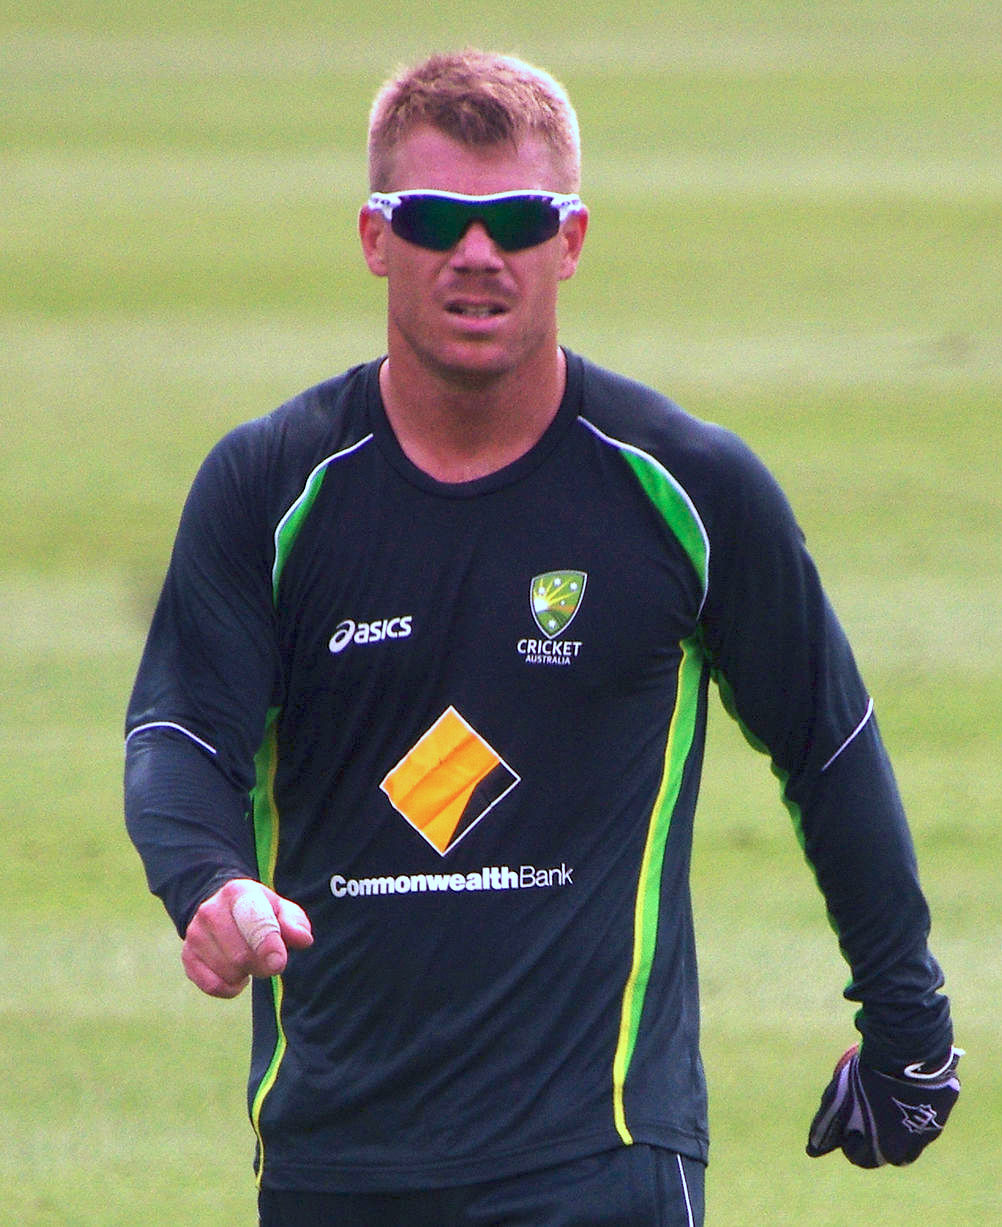 David Warner (cricketer) - Wikipedia